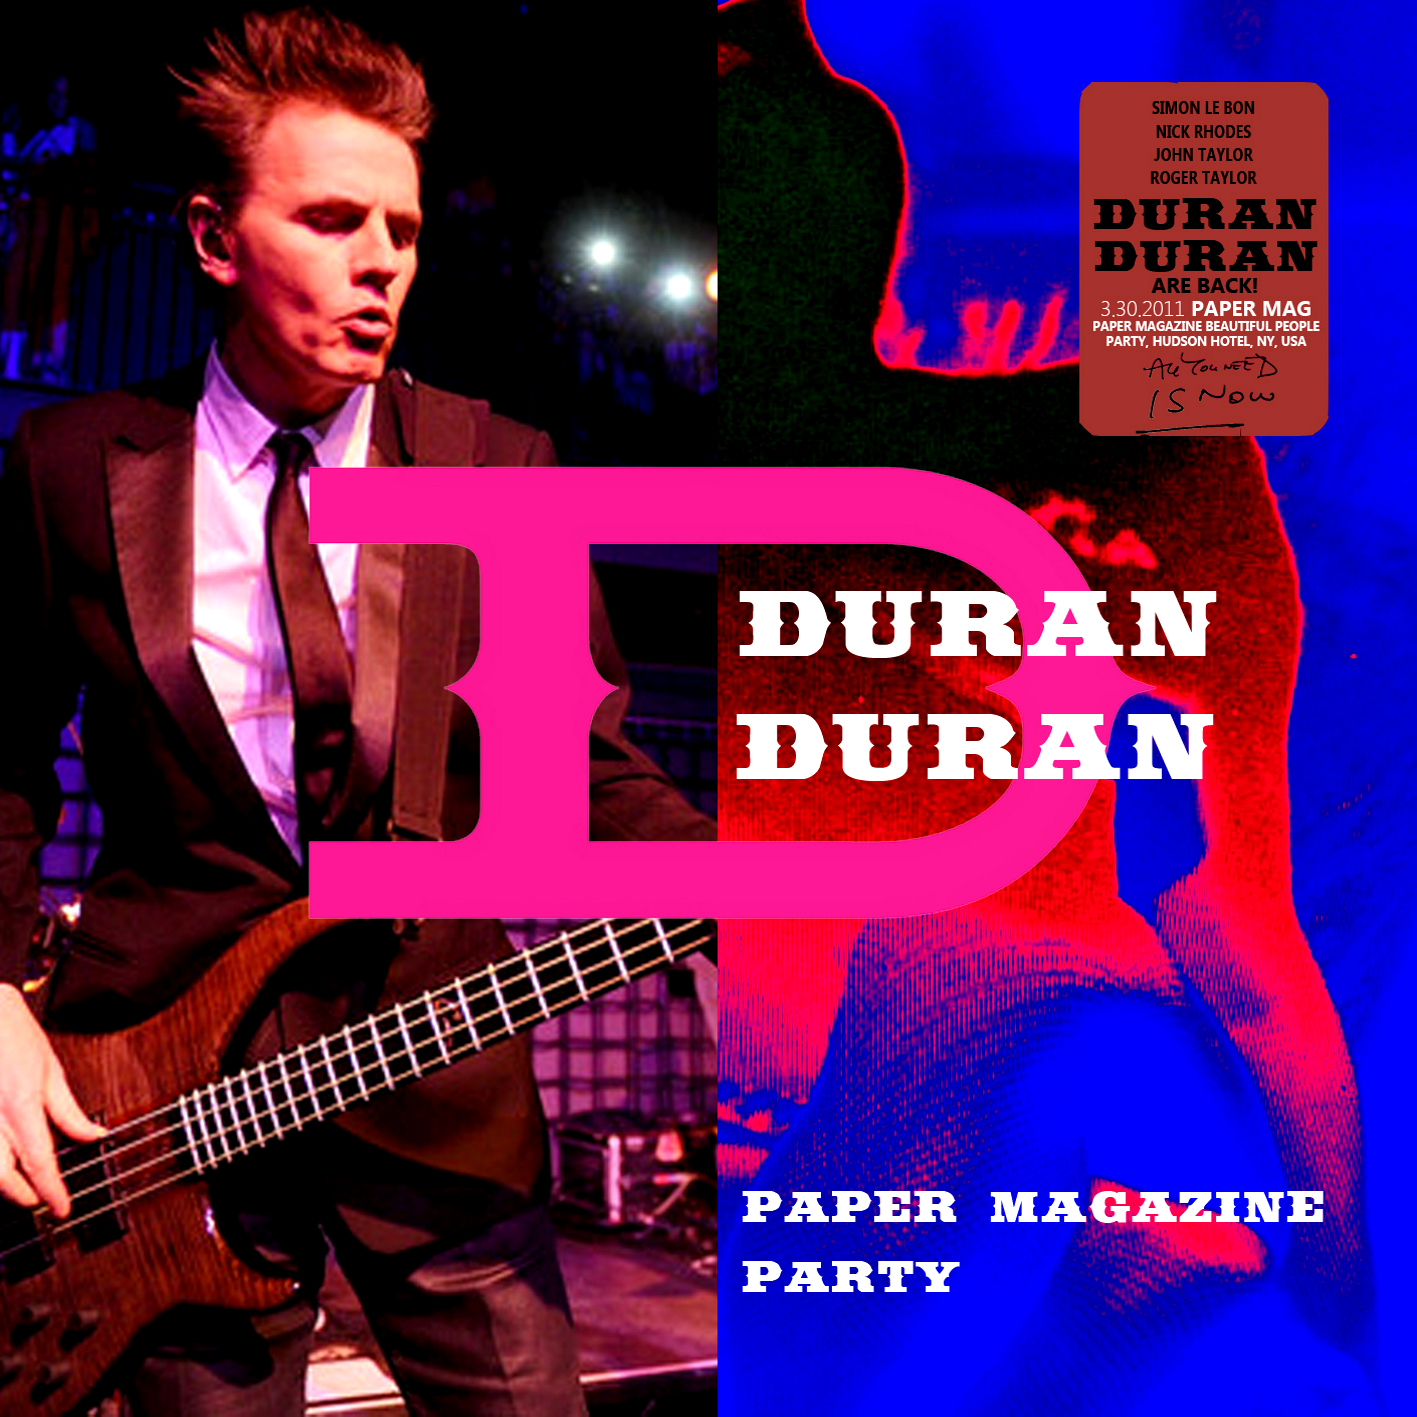 http://2.bp.blogspot.com/-7l7r7rFy-2k/TgfhCmttNdI/AAAAAAAAeMM/6NecZfXNyG8/s1600/Paper_Magazine_Beautiful_People_Party_duran_duran.jpg